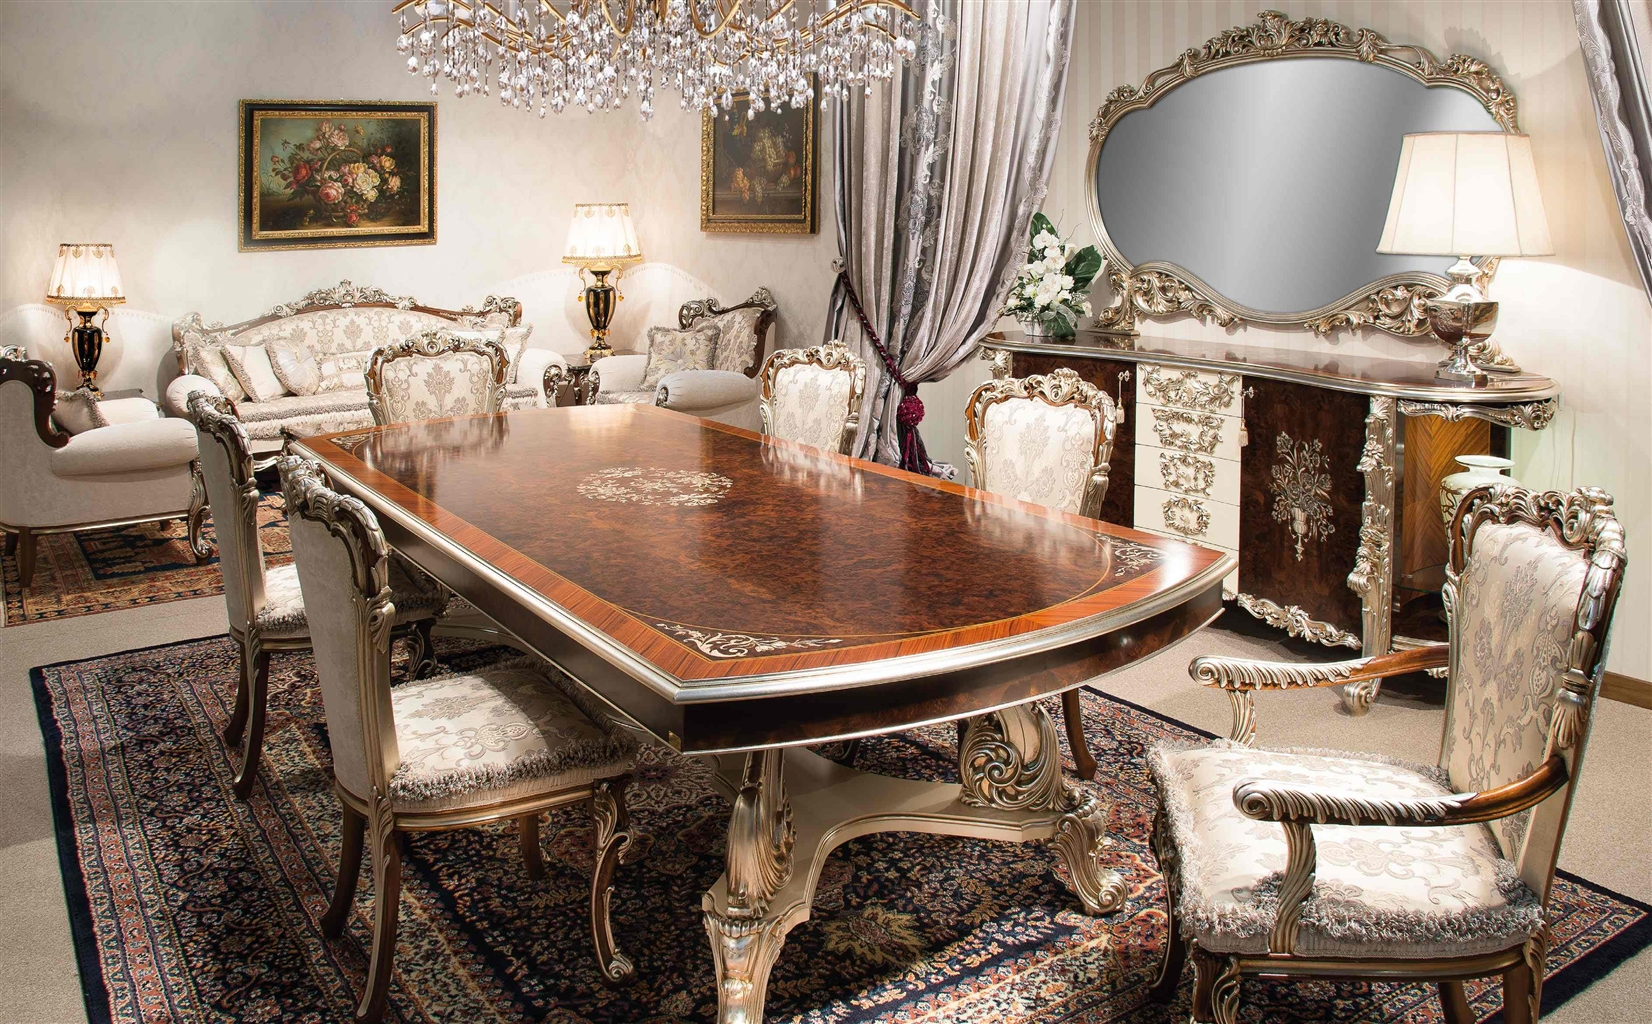 1 High End Italian Furniture. Dining Room Set